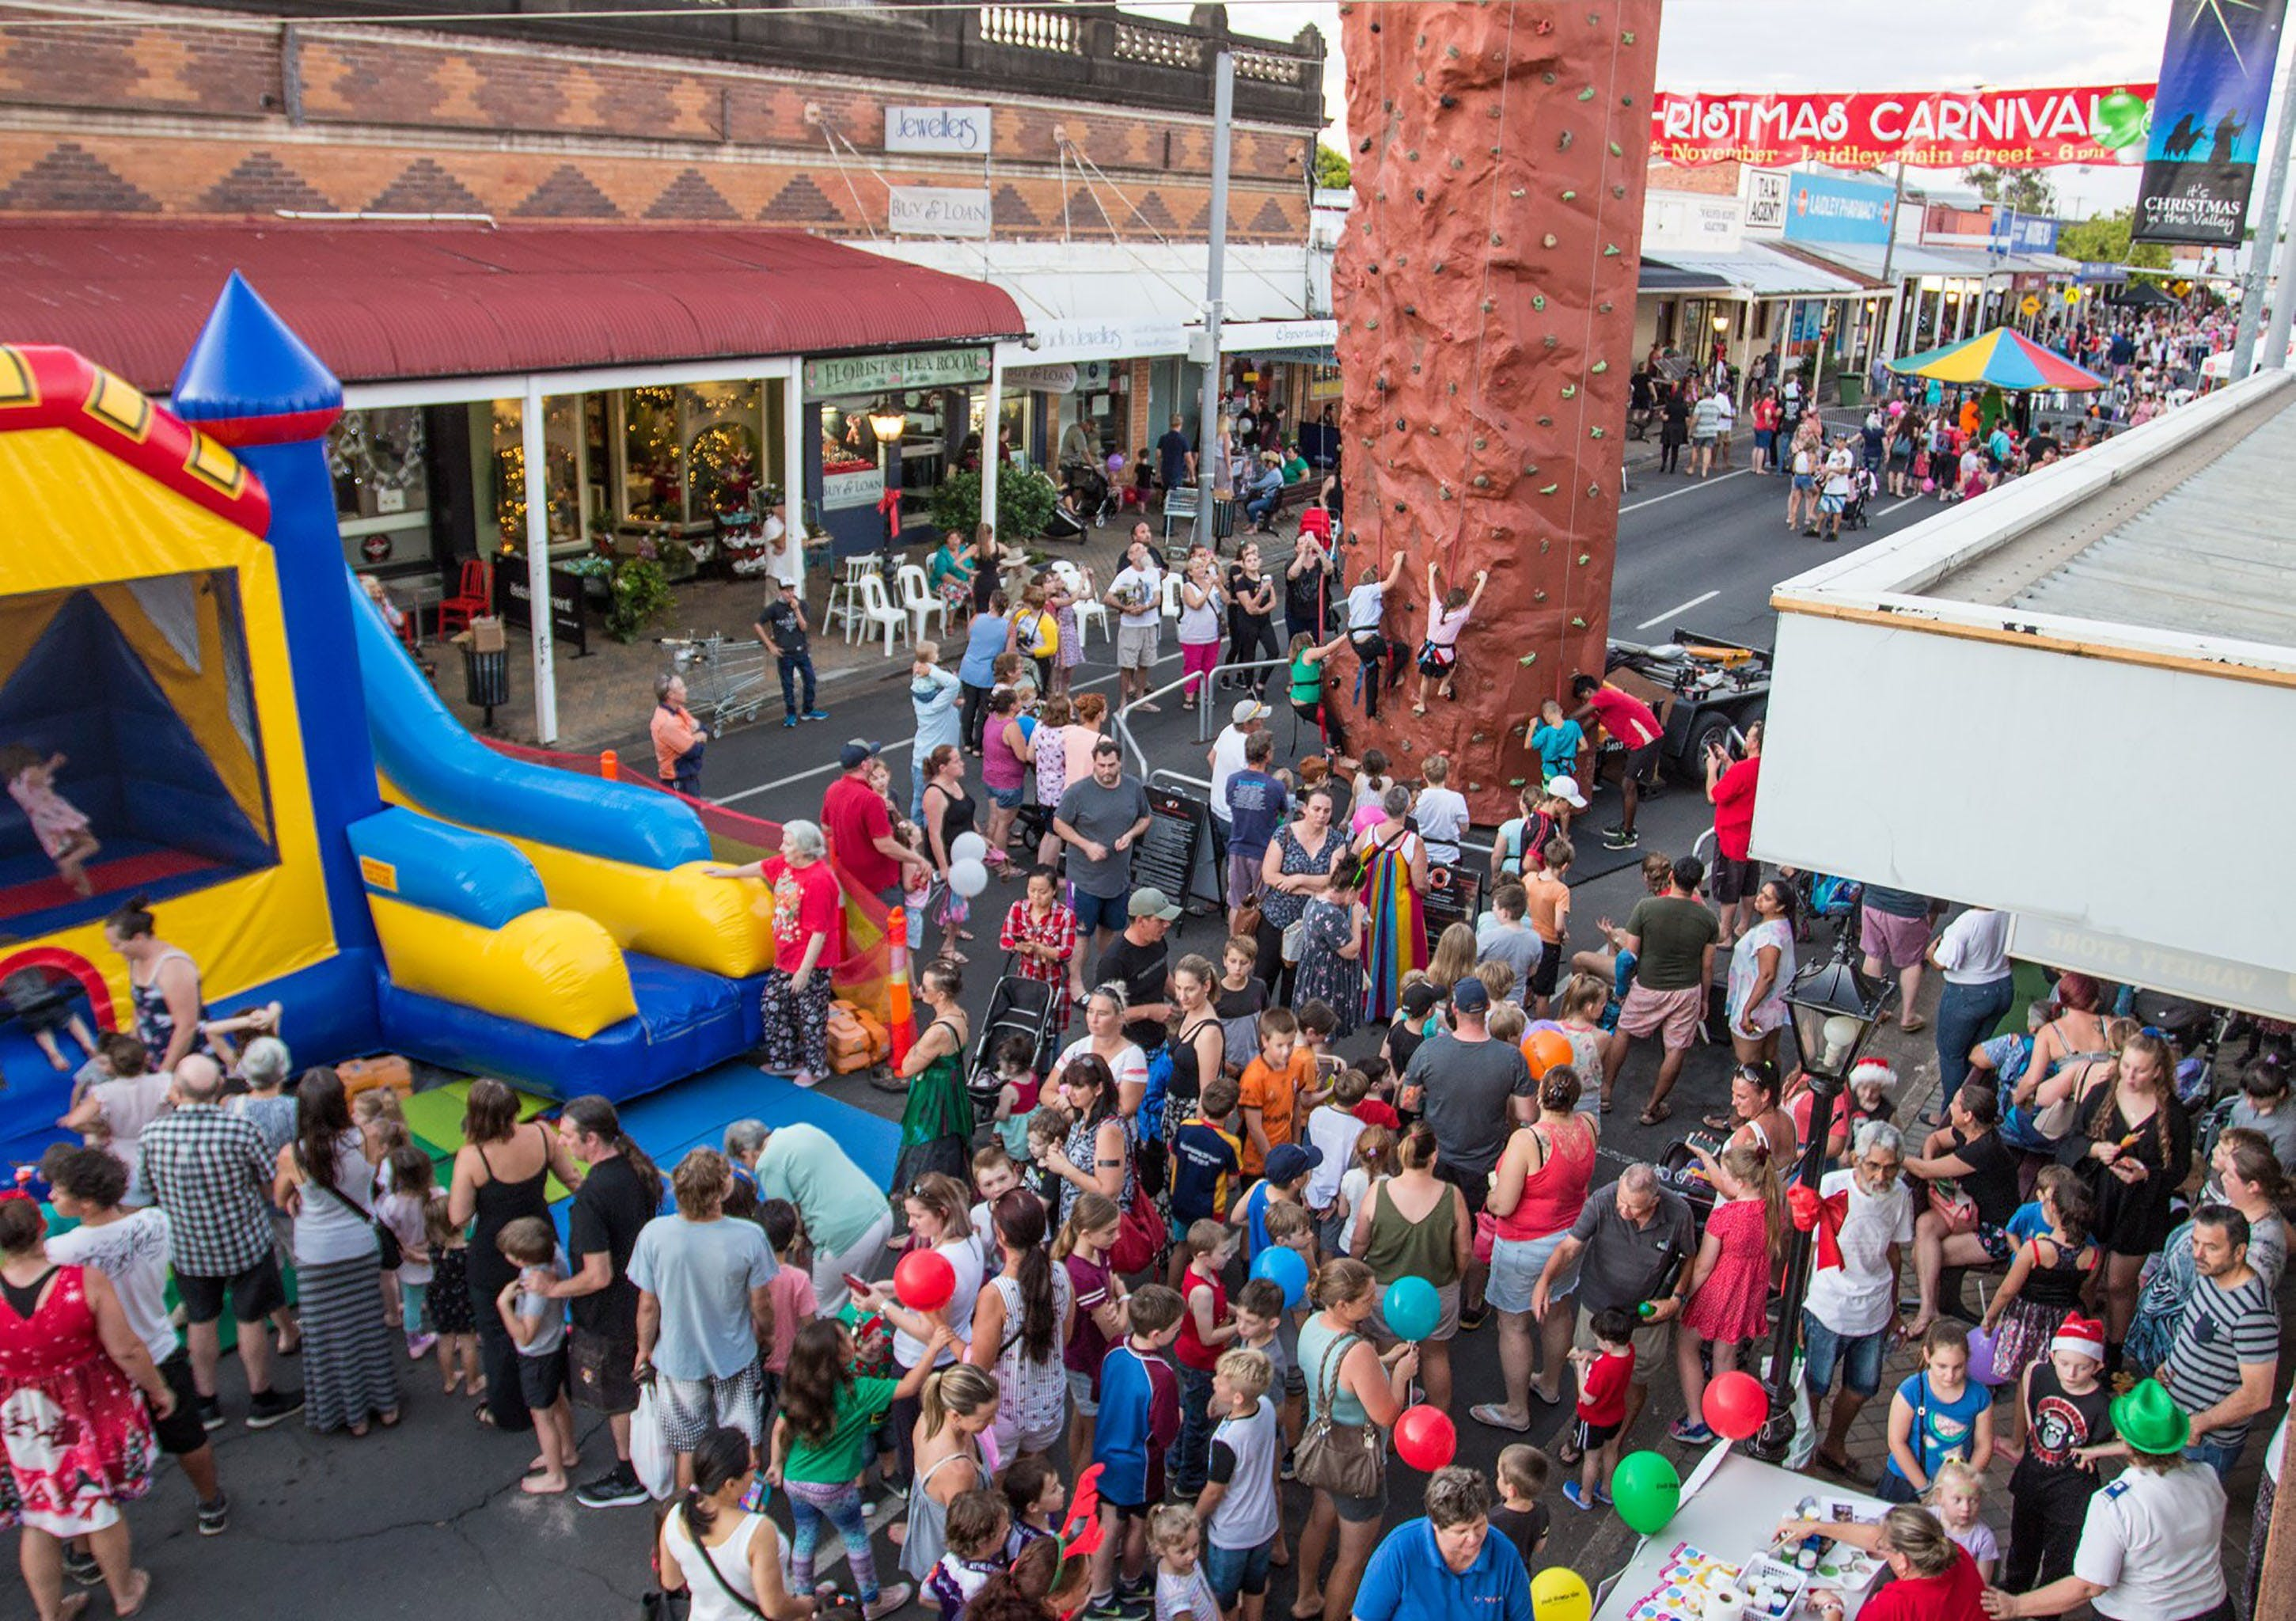 Laidley Christmas Street Festival - Accommodation Cairns